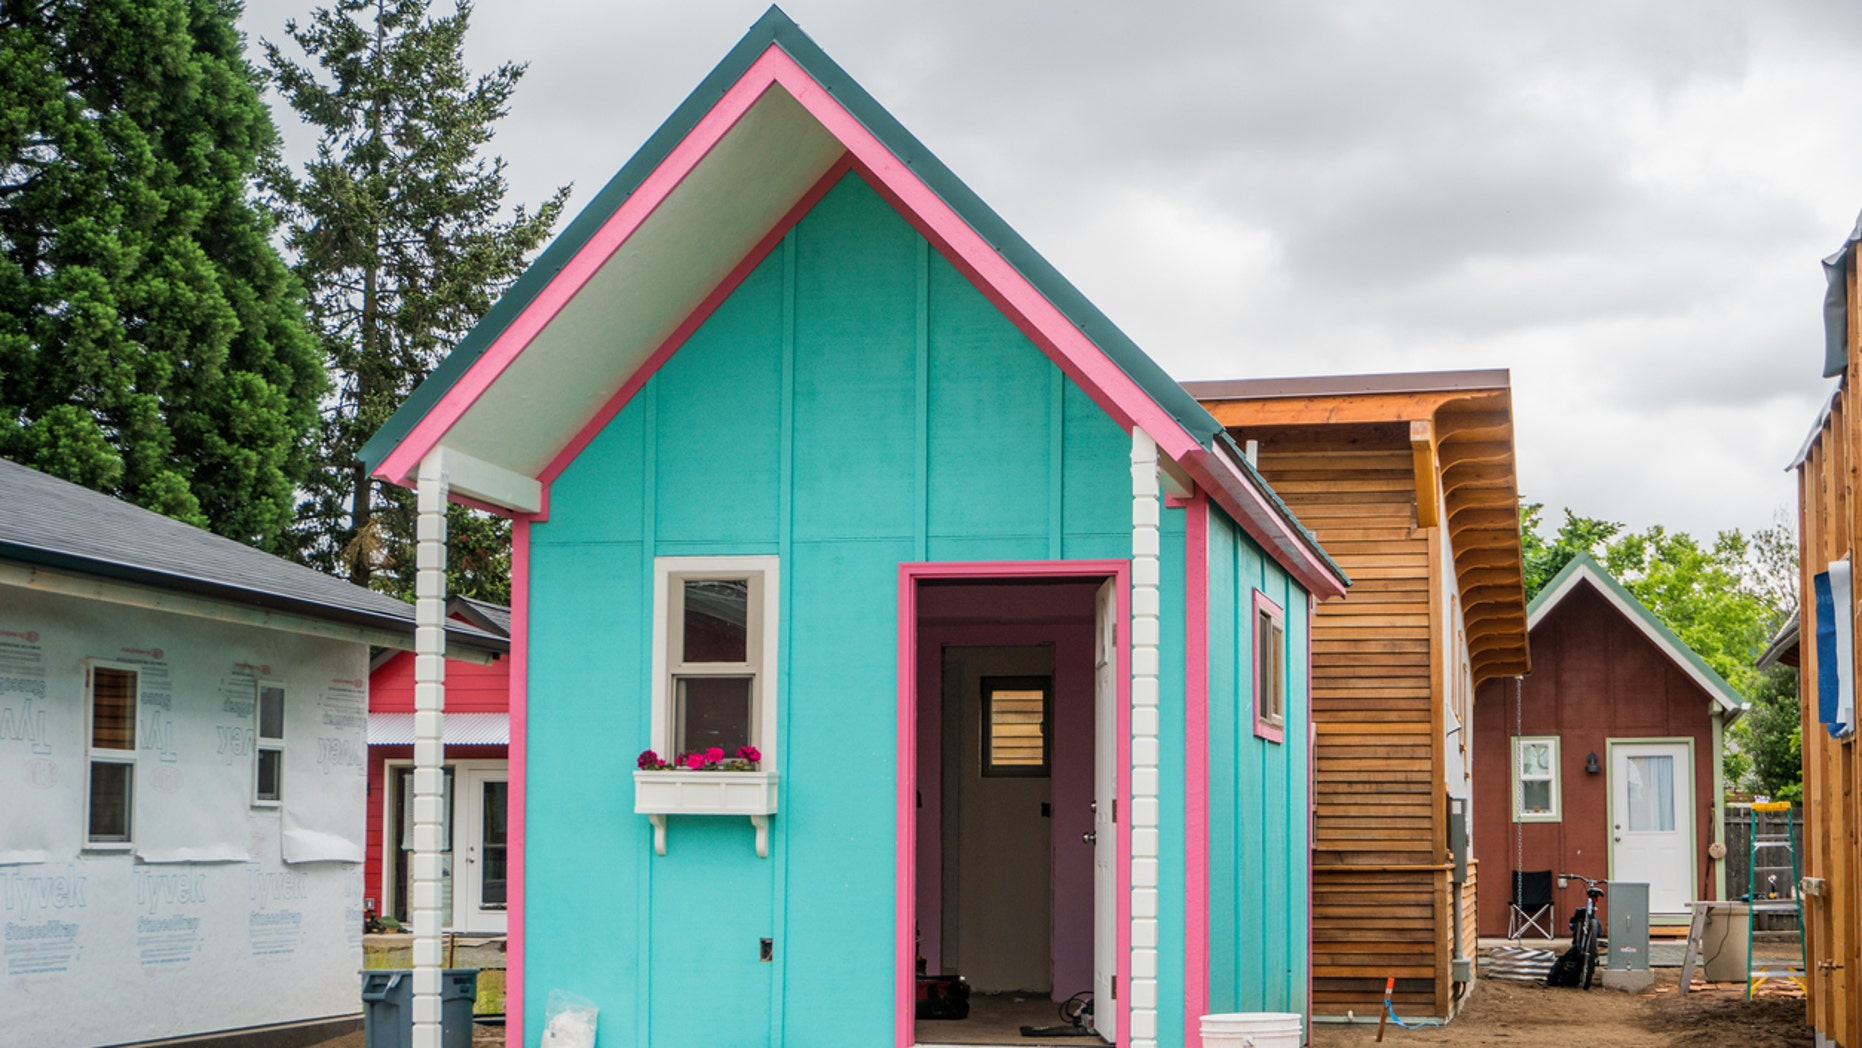 Moving into a tiny house had a major impact on a person's wasteful behavior generally.